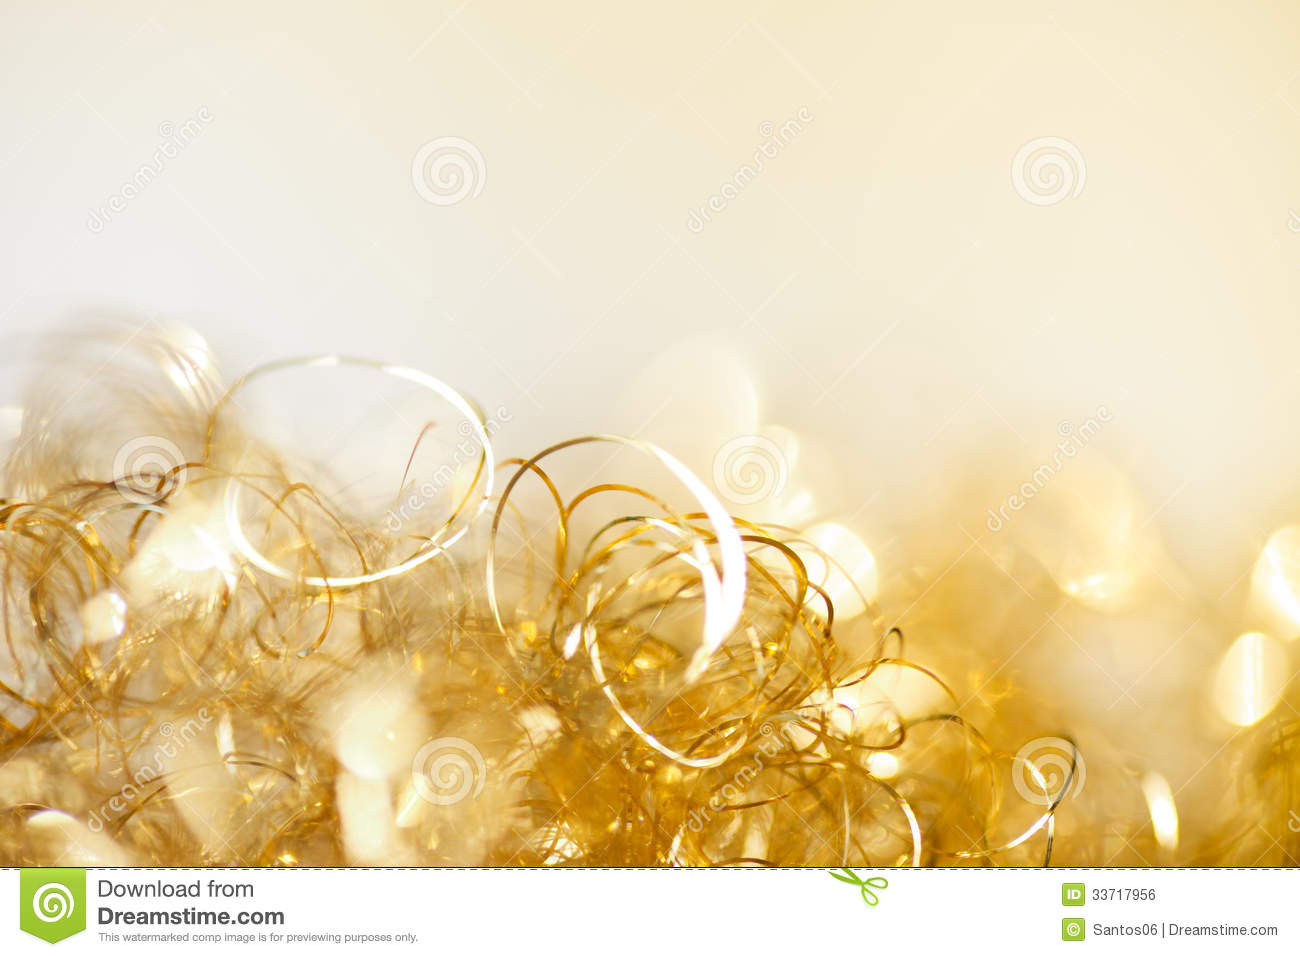 Christmas Background Images Gold.Gold Twinkle Christmas Background Stock Photo Image Of